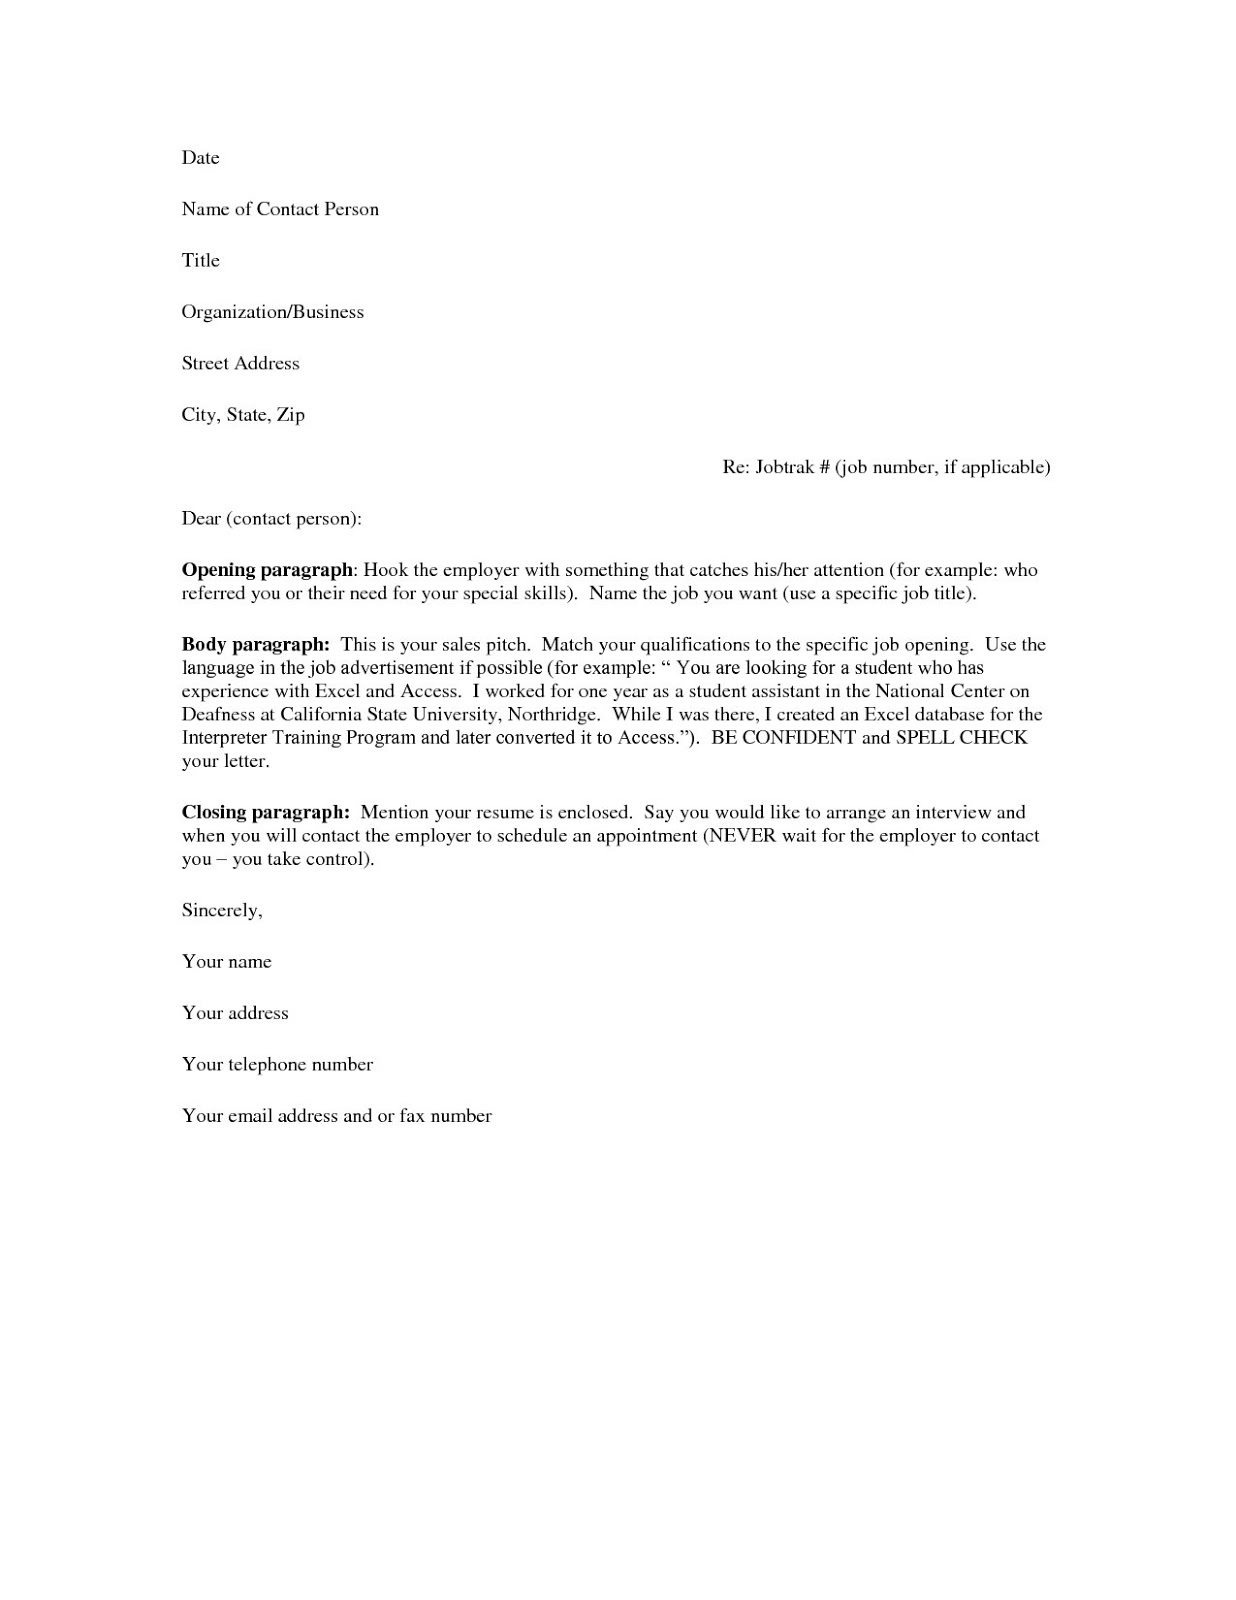 Sample Cover Letters For Resumes cover letter for resume – Resume Format with Cover Letter